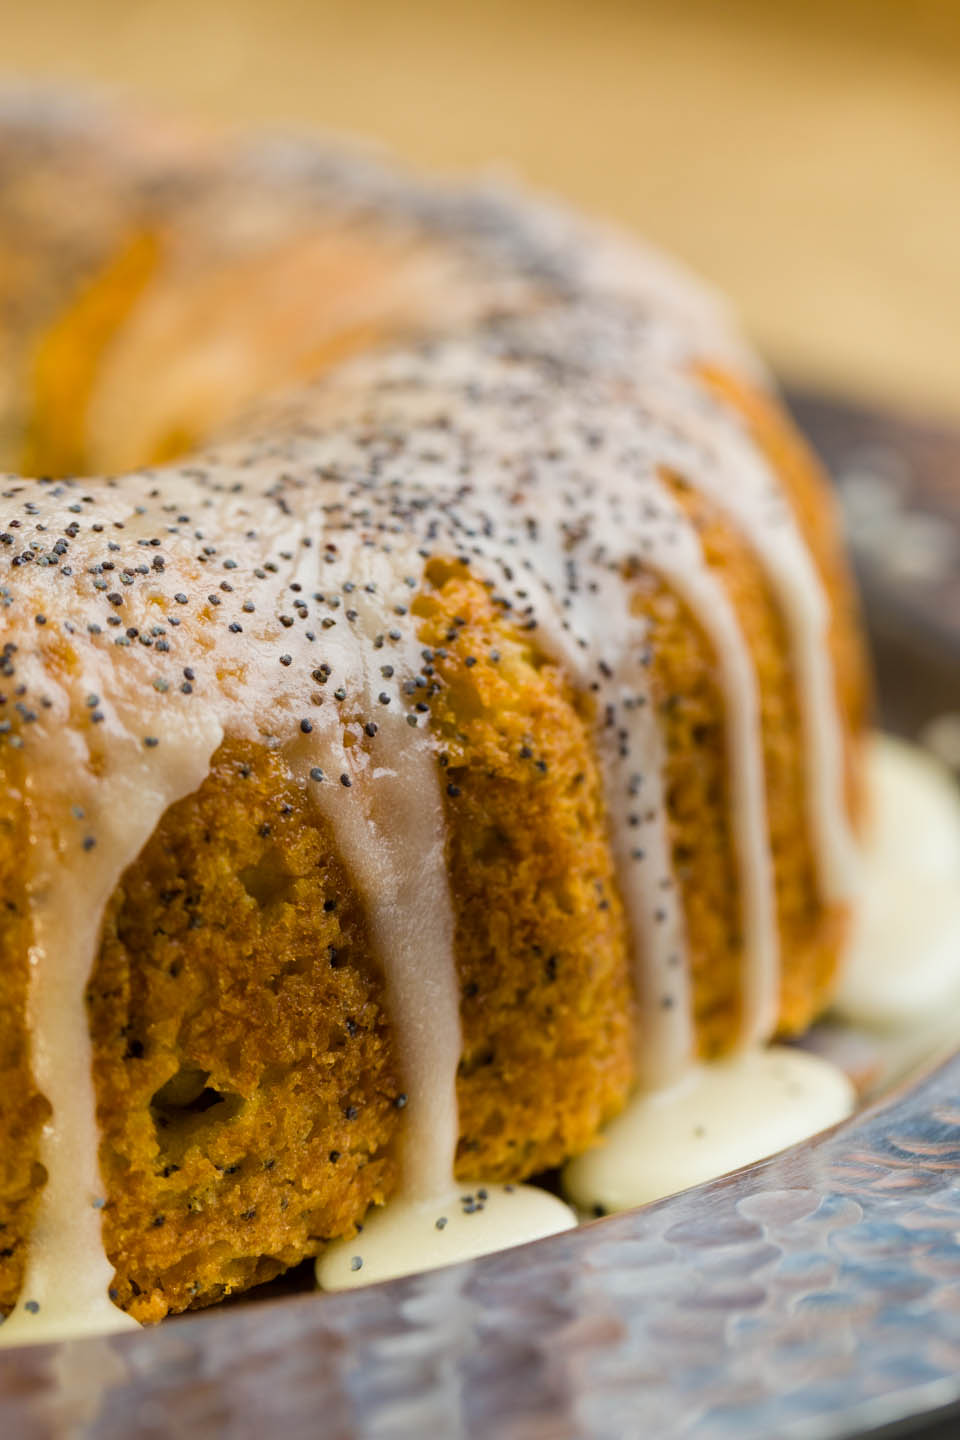 Lemon poppy seed bunt cake